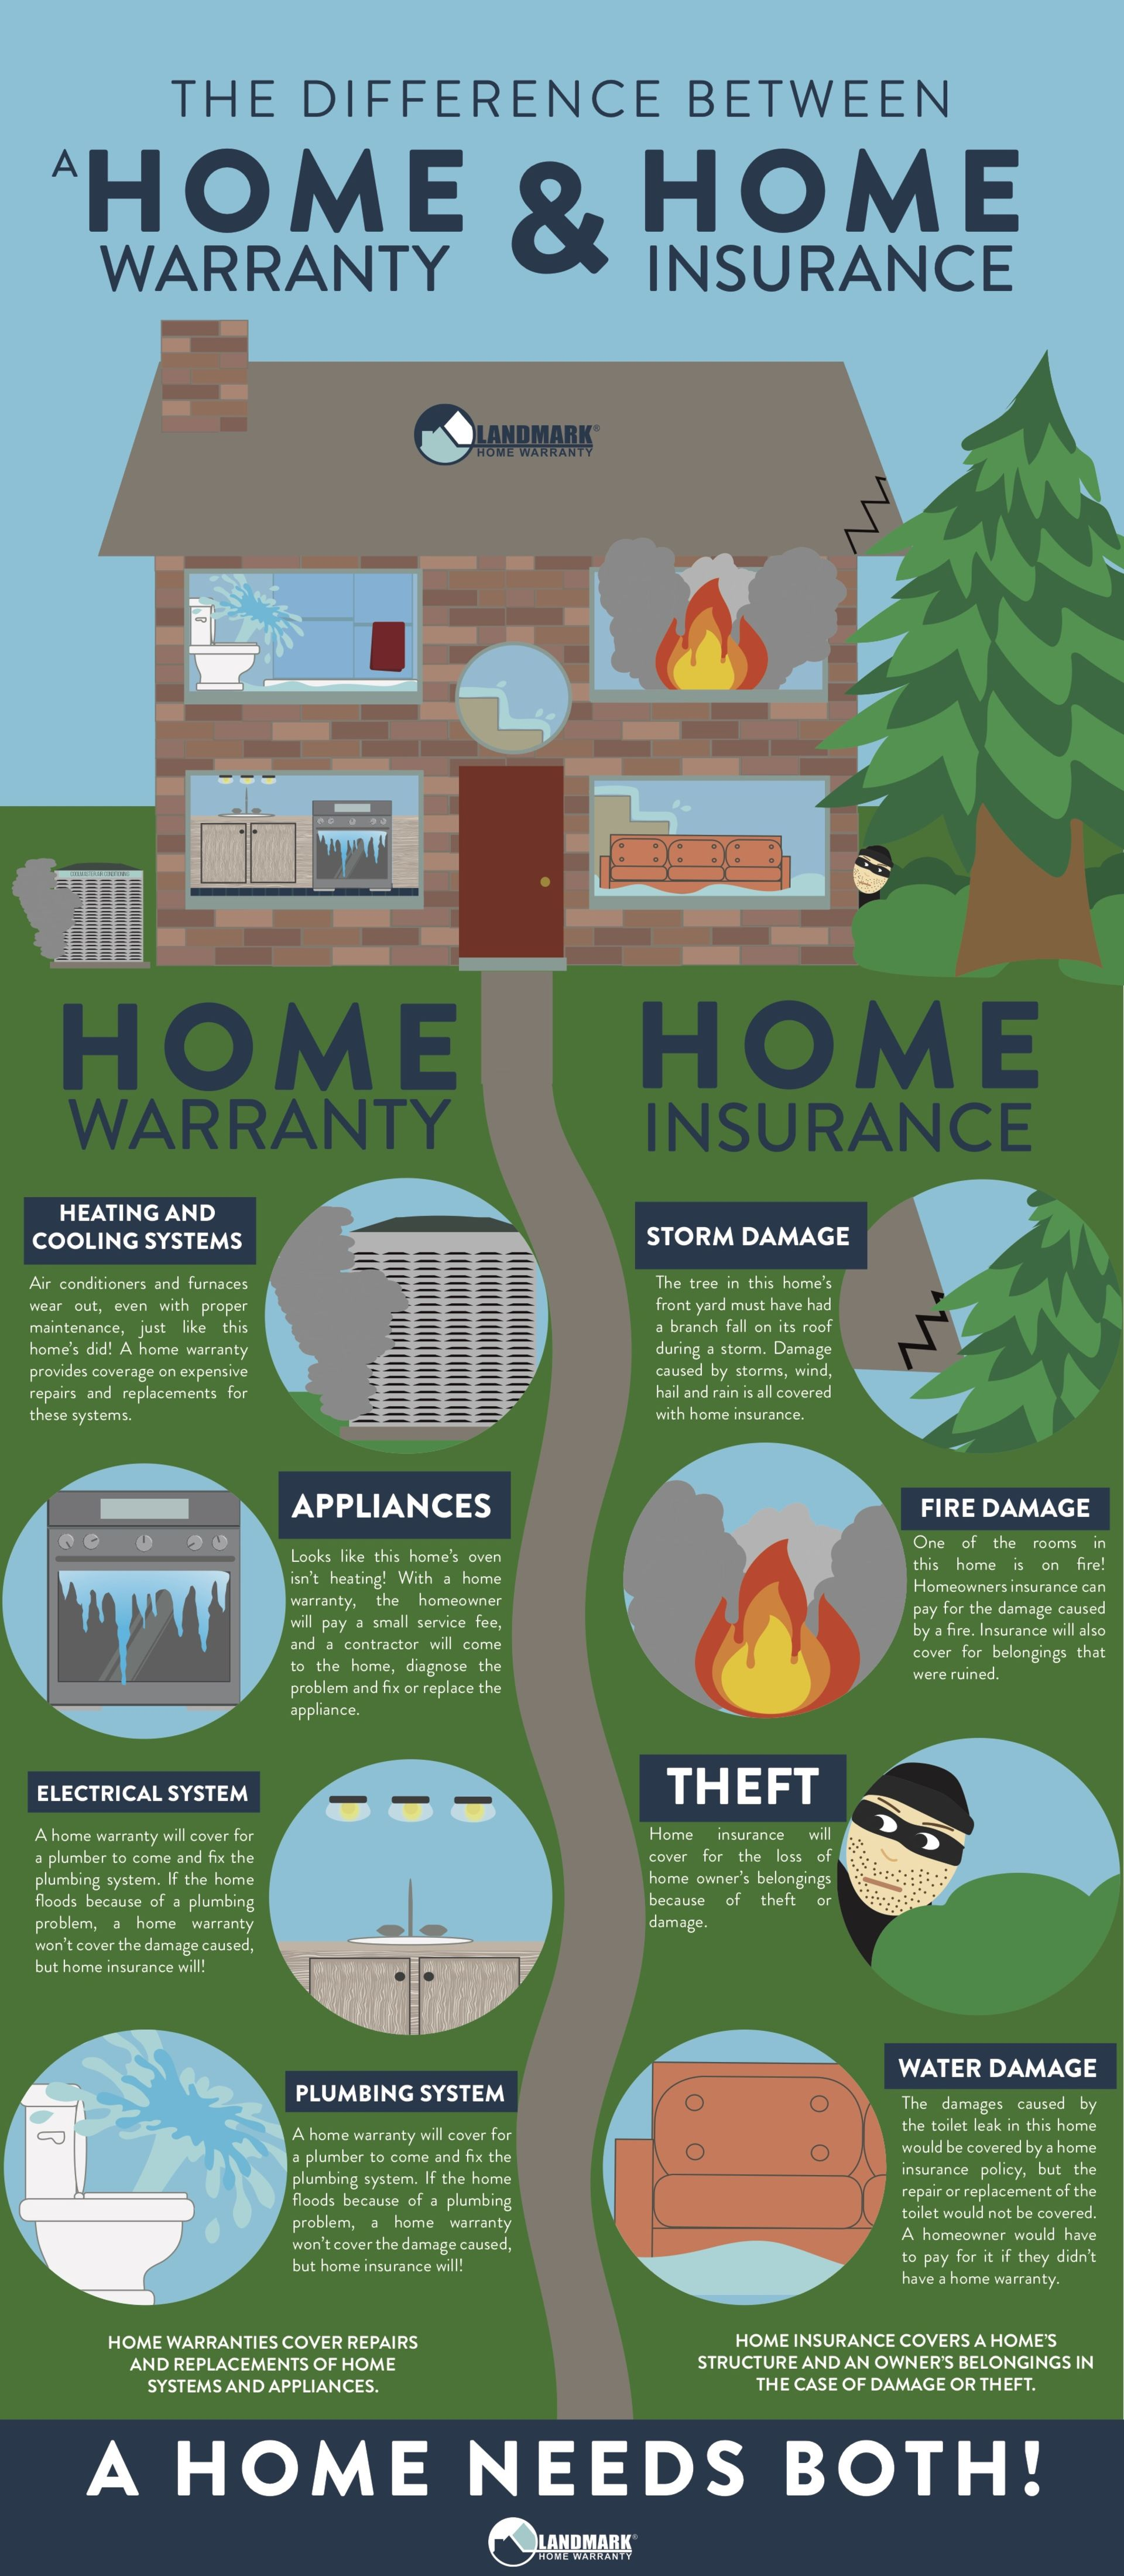 Home Warranty or Home Insurance